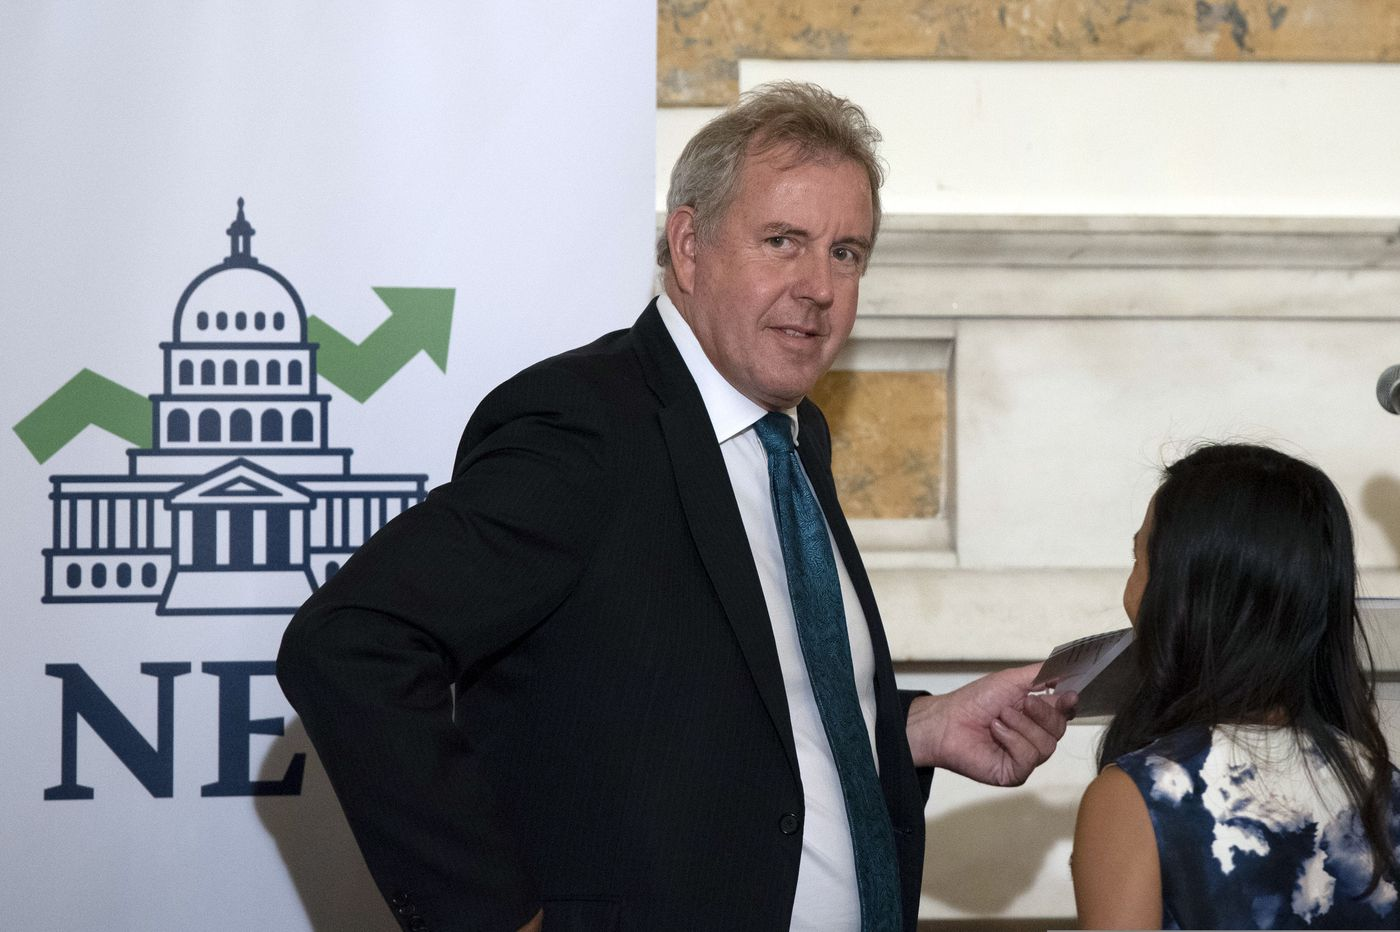 U.K. ambassador to U.S. quits days after leaked cables on Trump